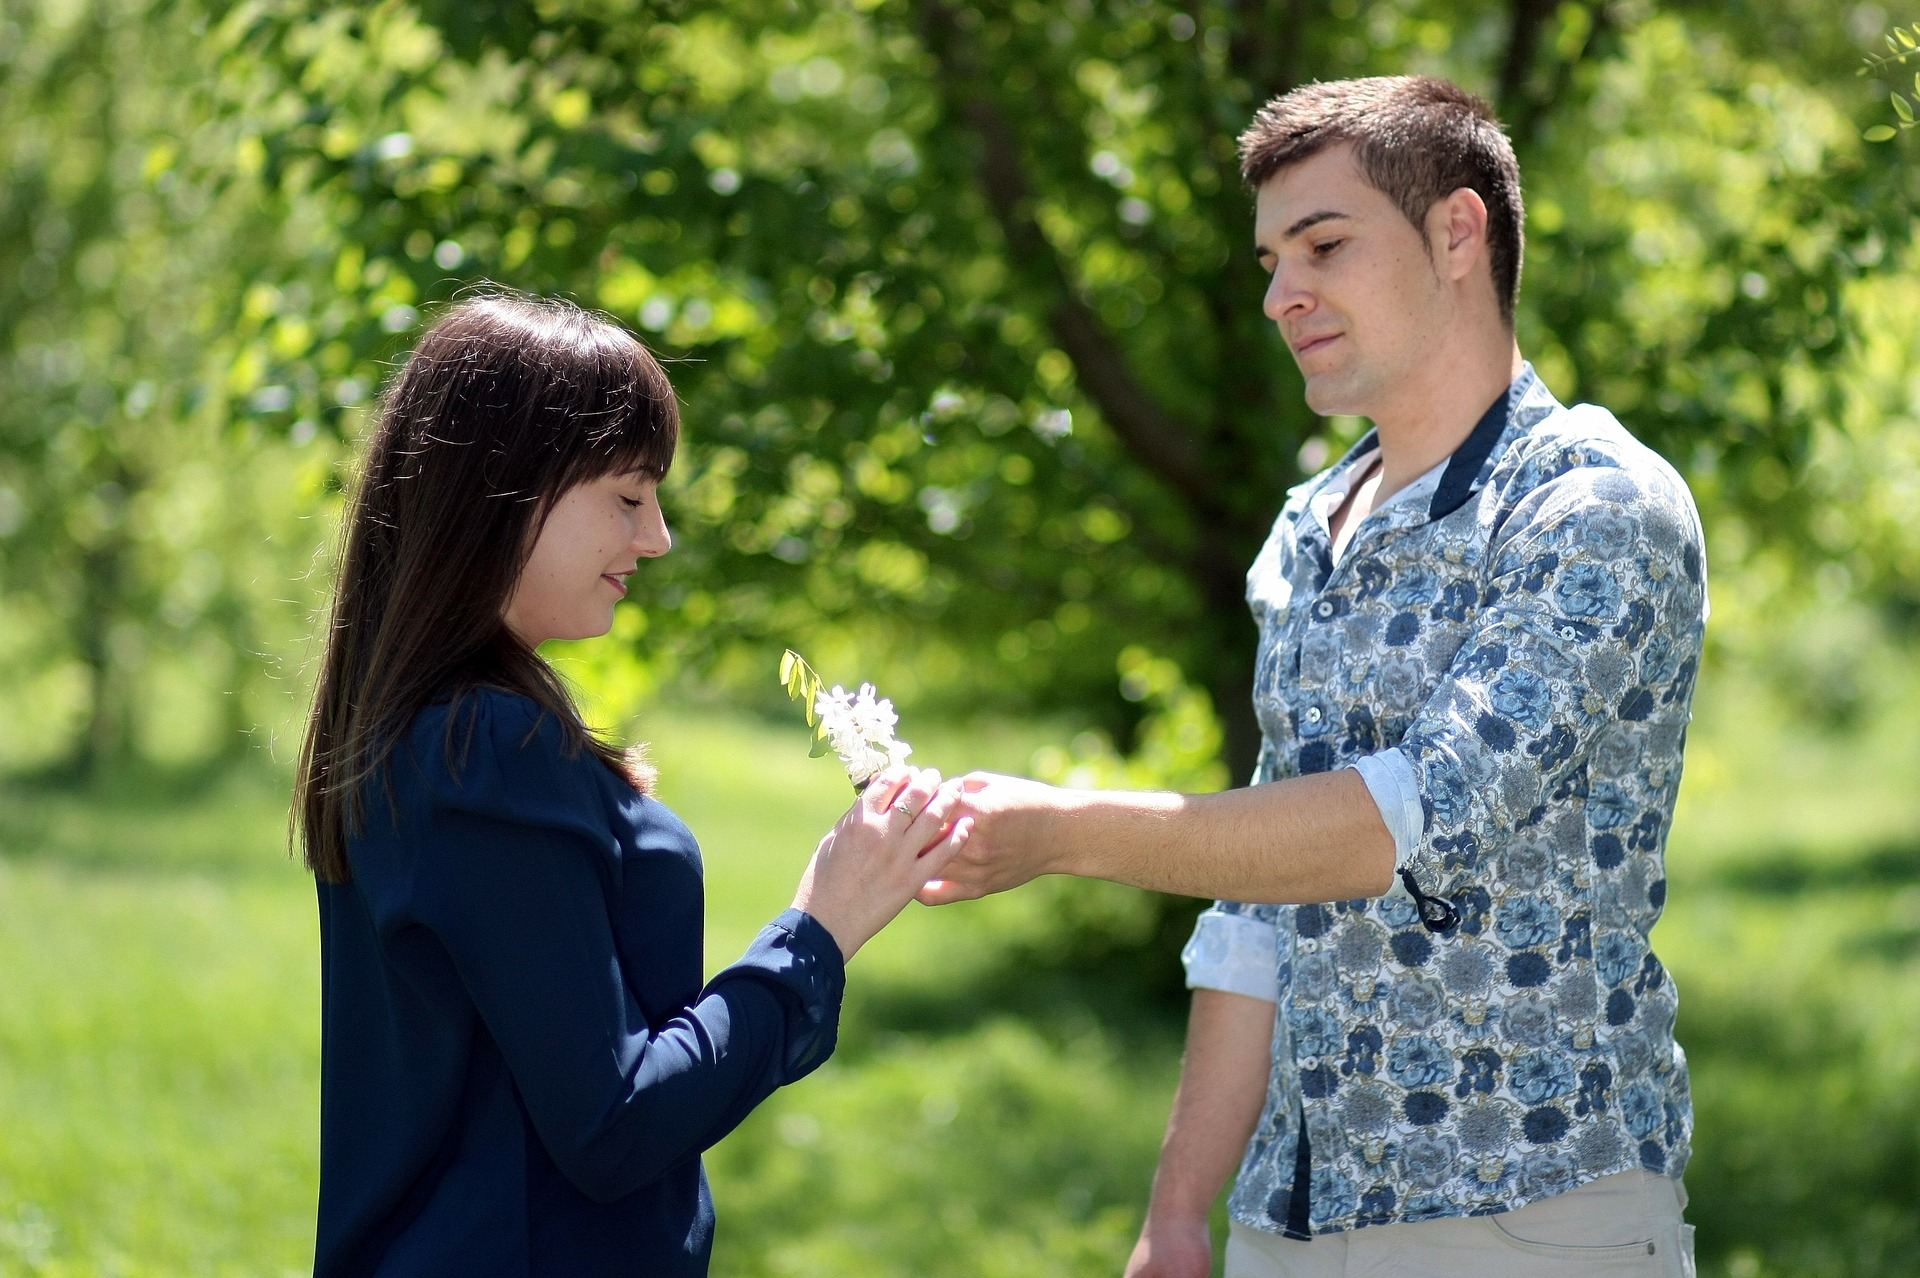 How To Impress A Girl In The First Meeting For Marriage? 2021